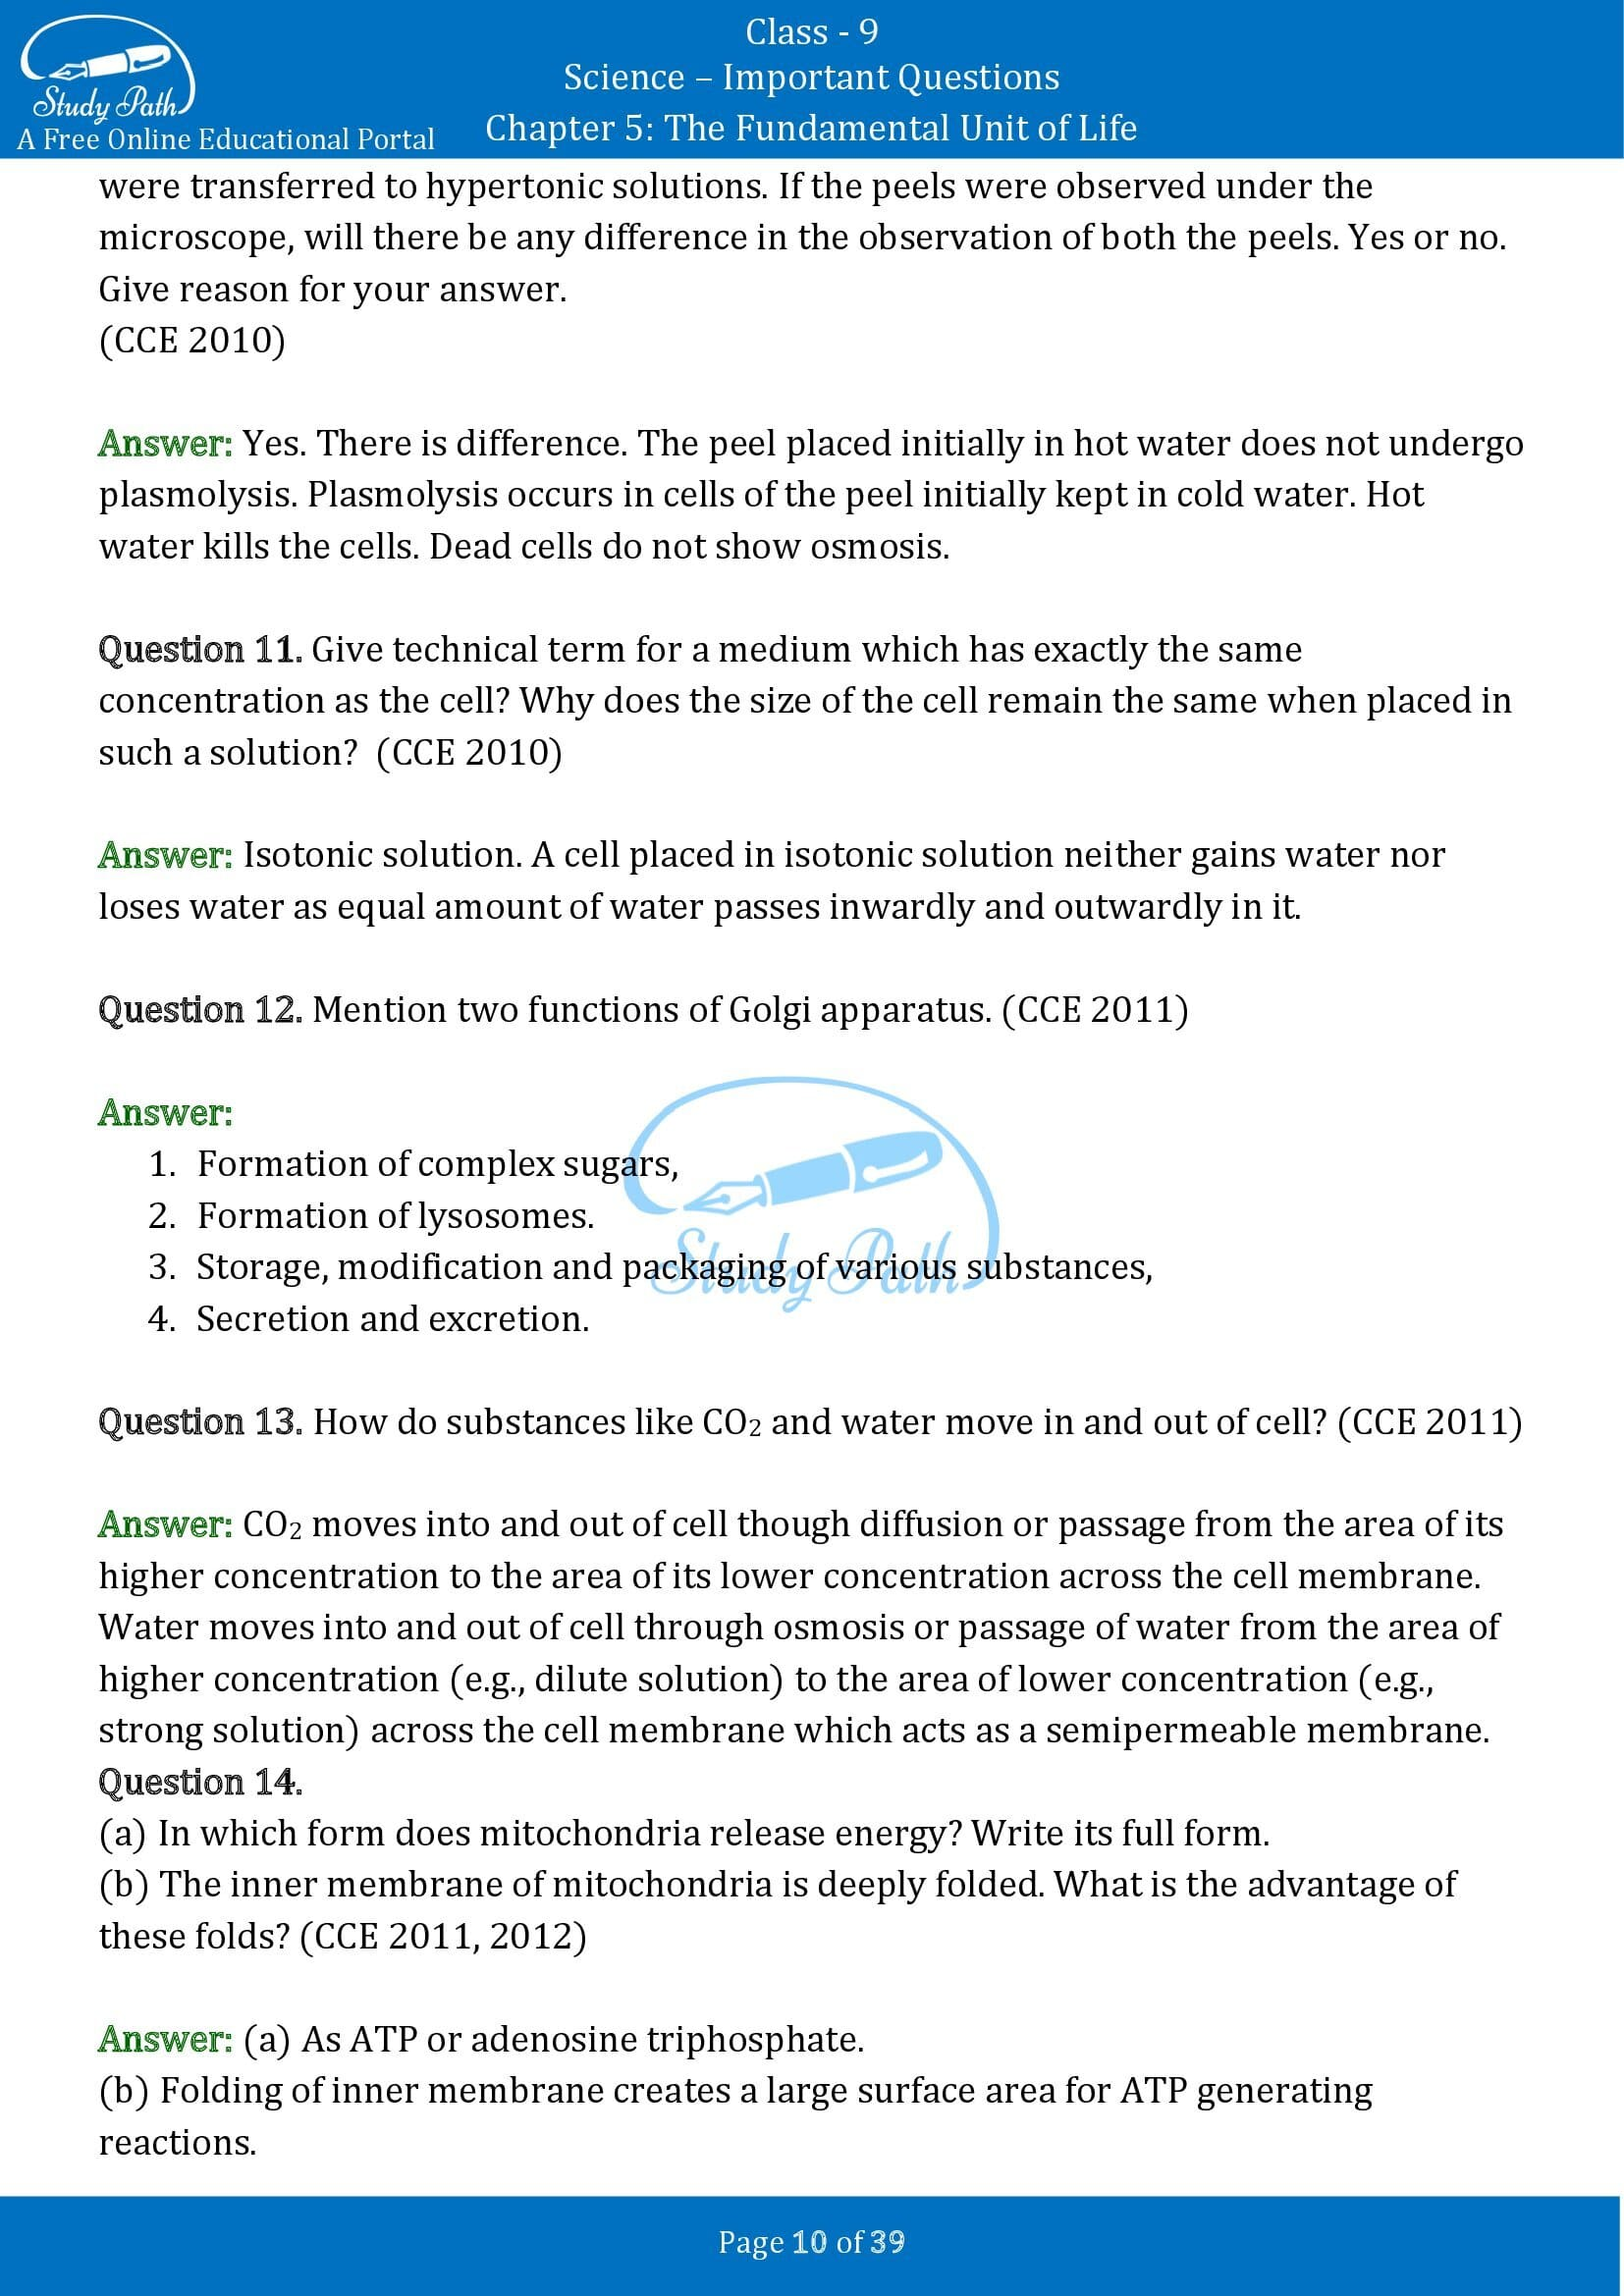 Important Questions for Class 9 Science Chapter 5 The Fundamental Unit of Life 00010